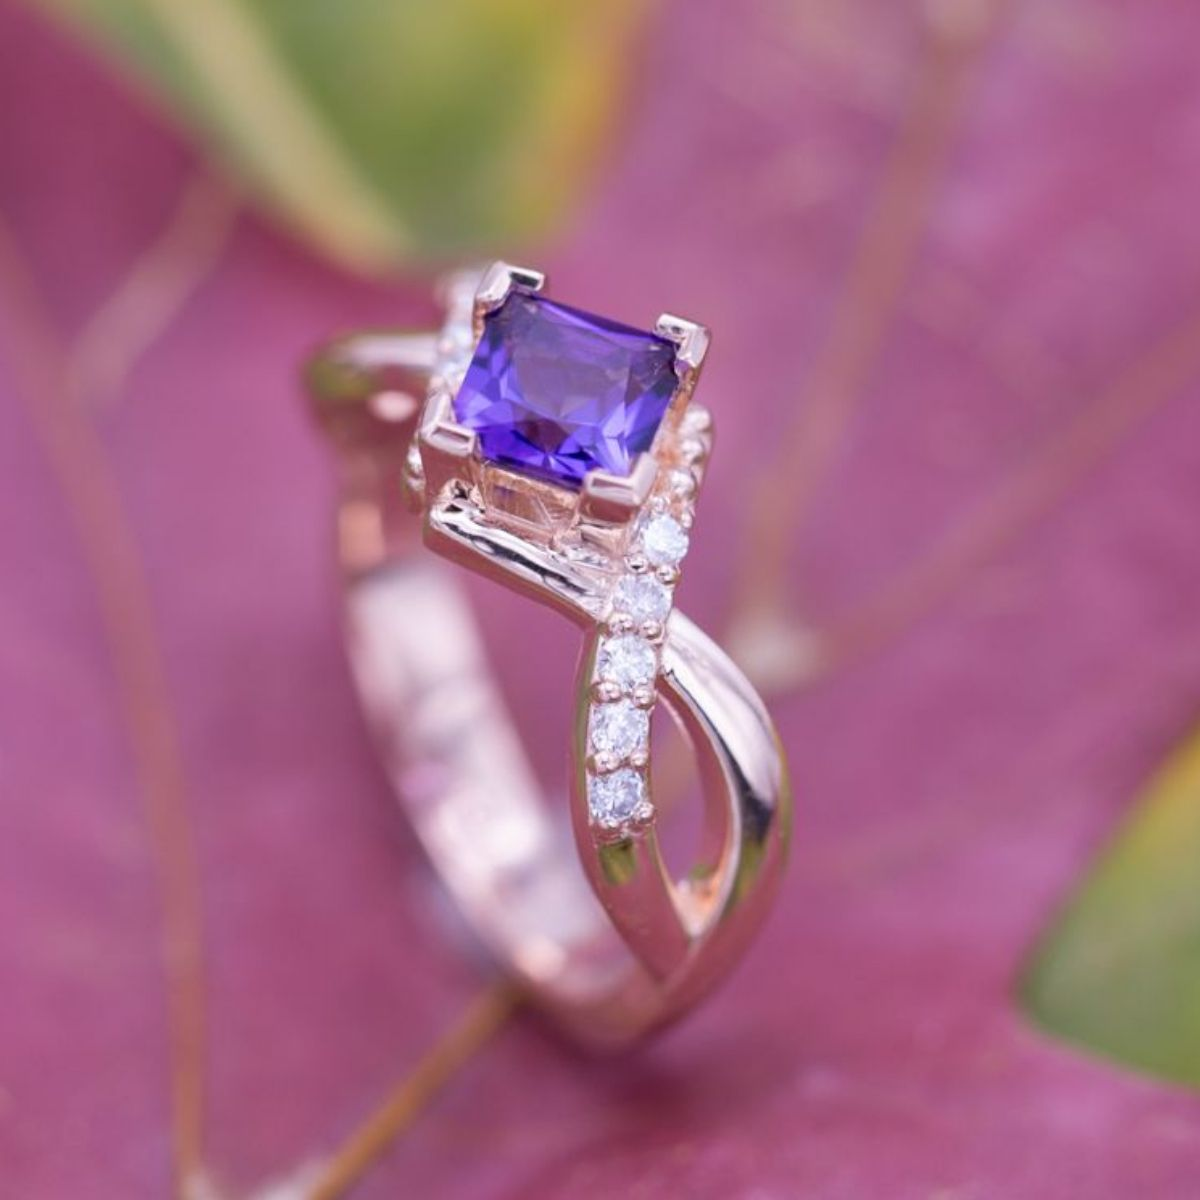 Amethyst Engagement Rings | CustomMade.com